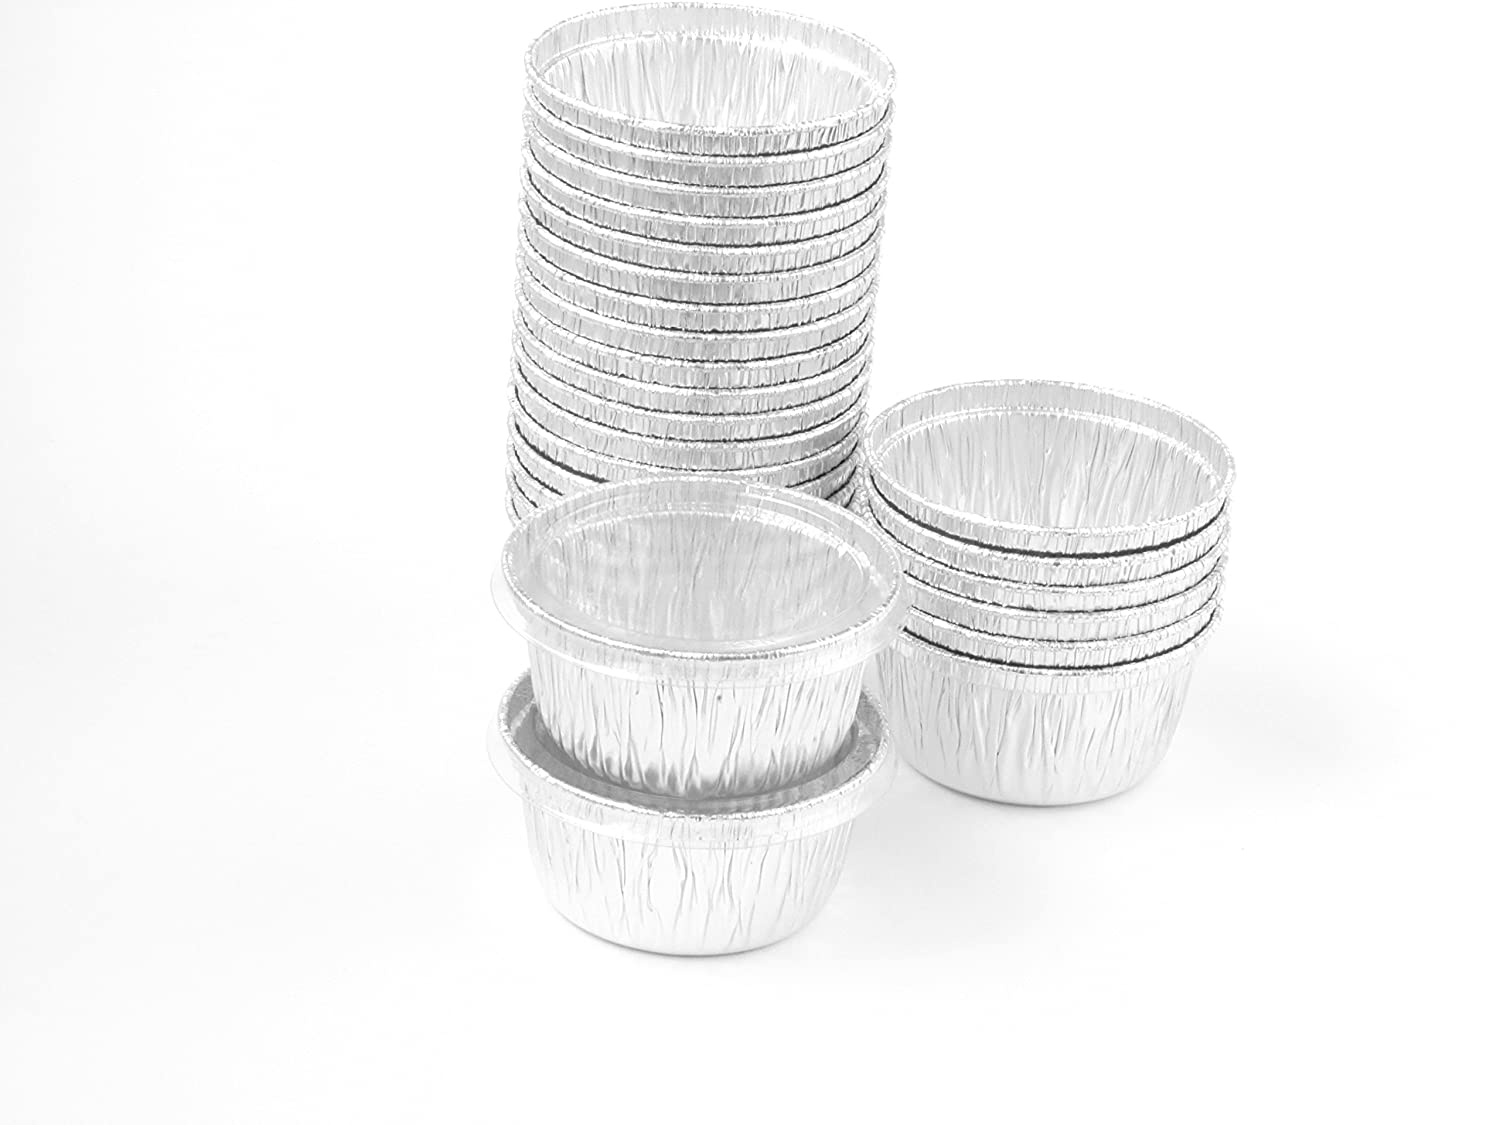 Disposable Aluminum 4 Oz Ramekins/foil Cups w/ Clear Snap on Lid #1400p (50)